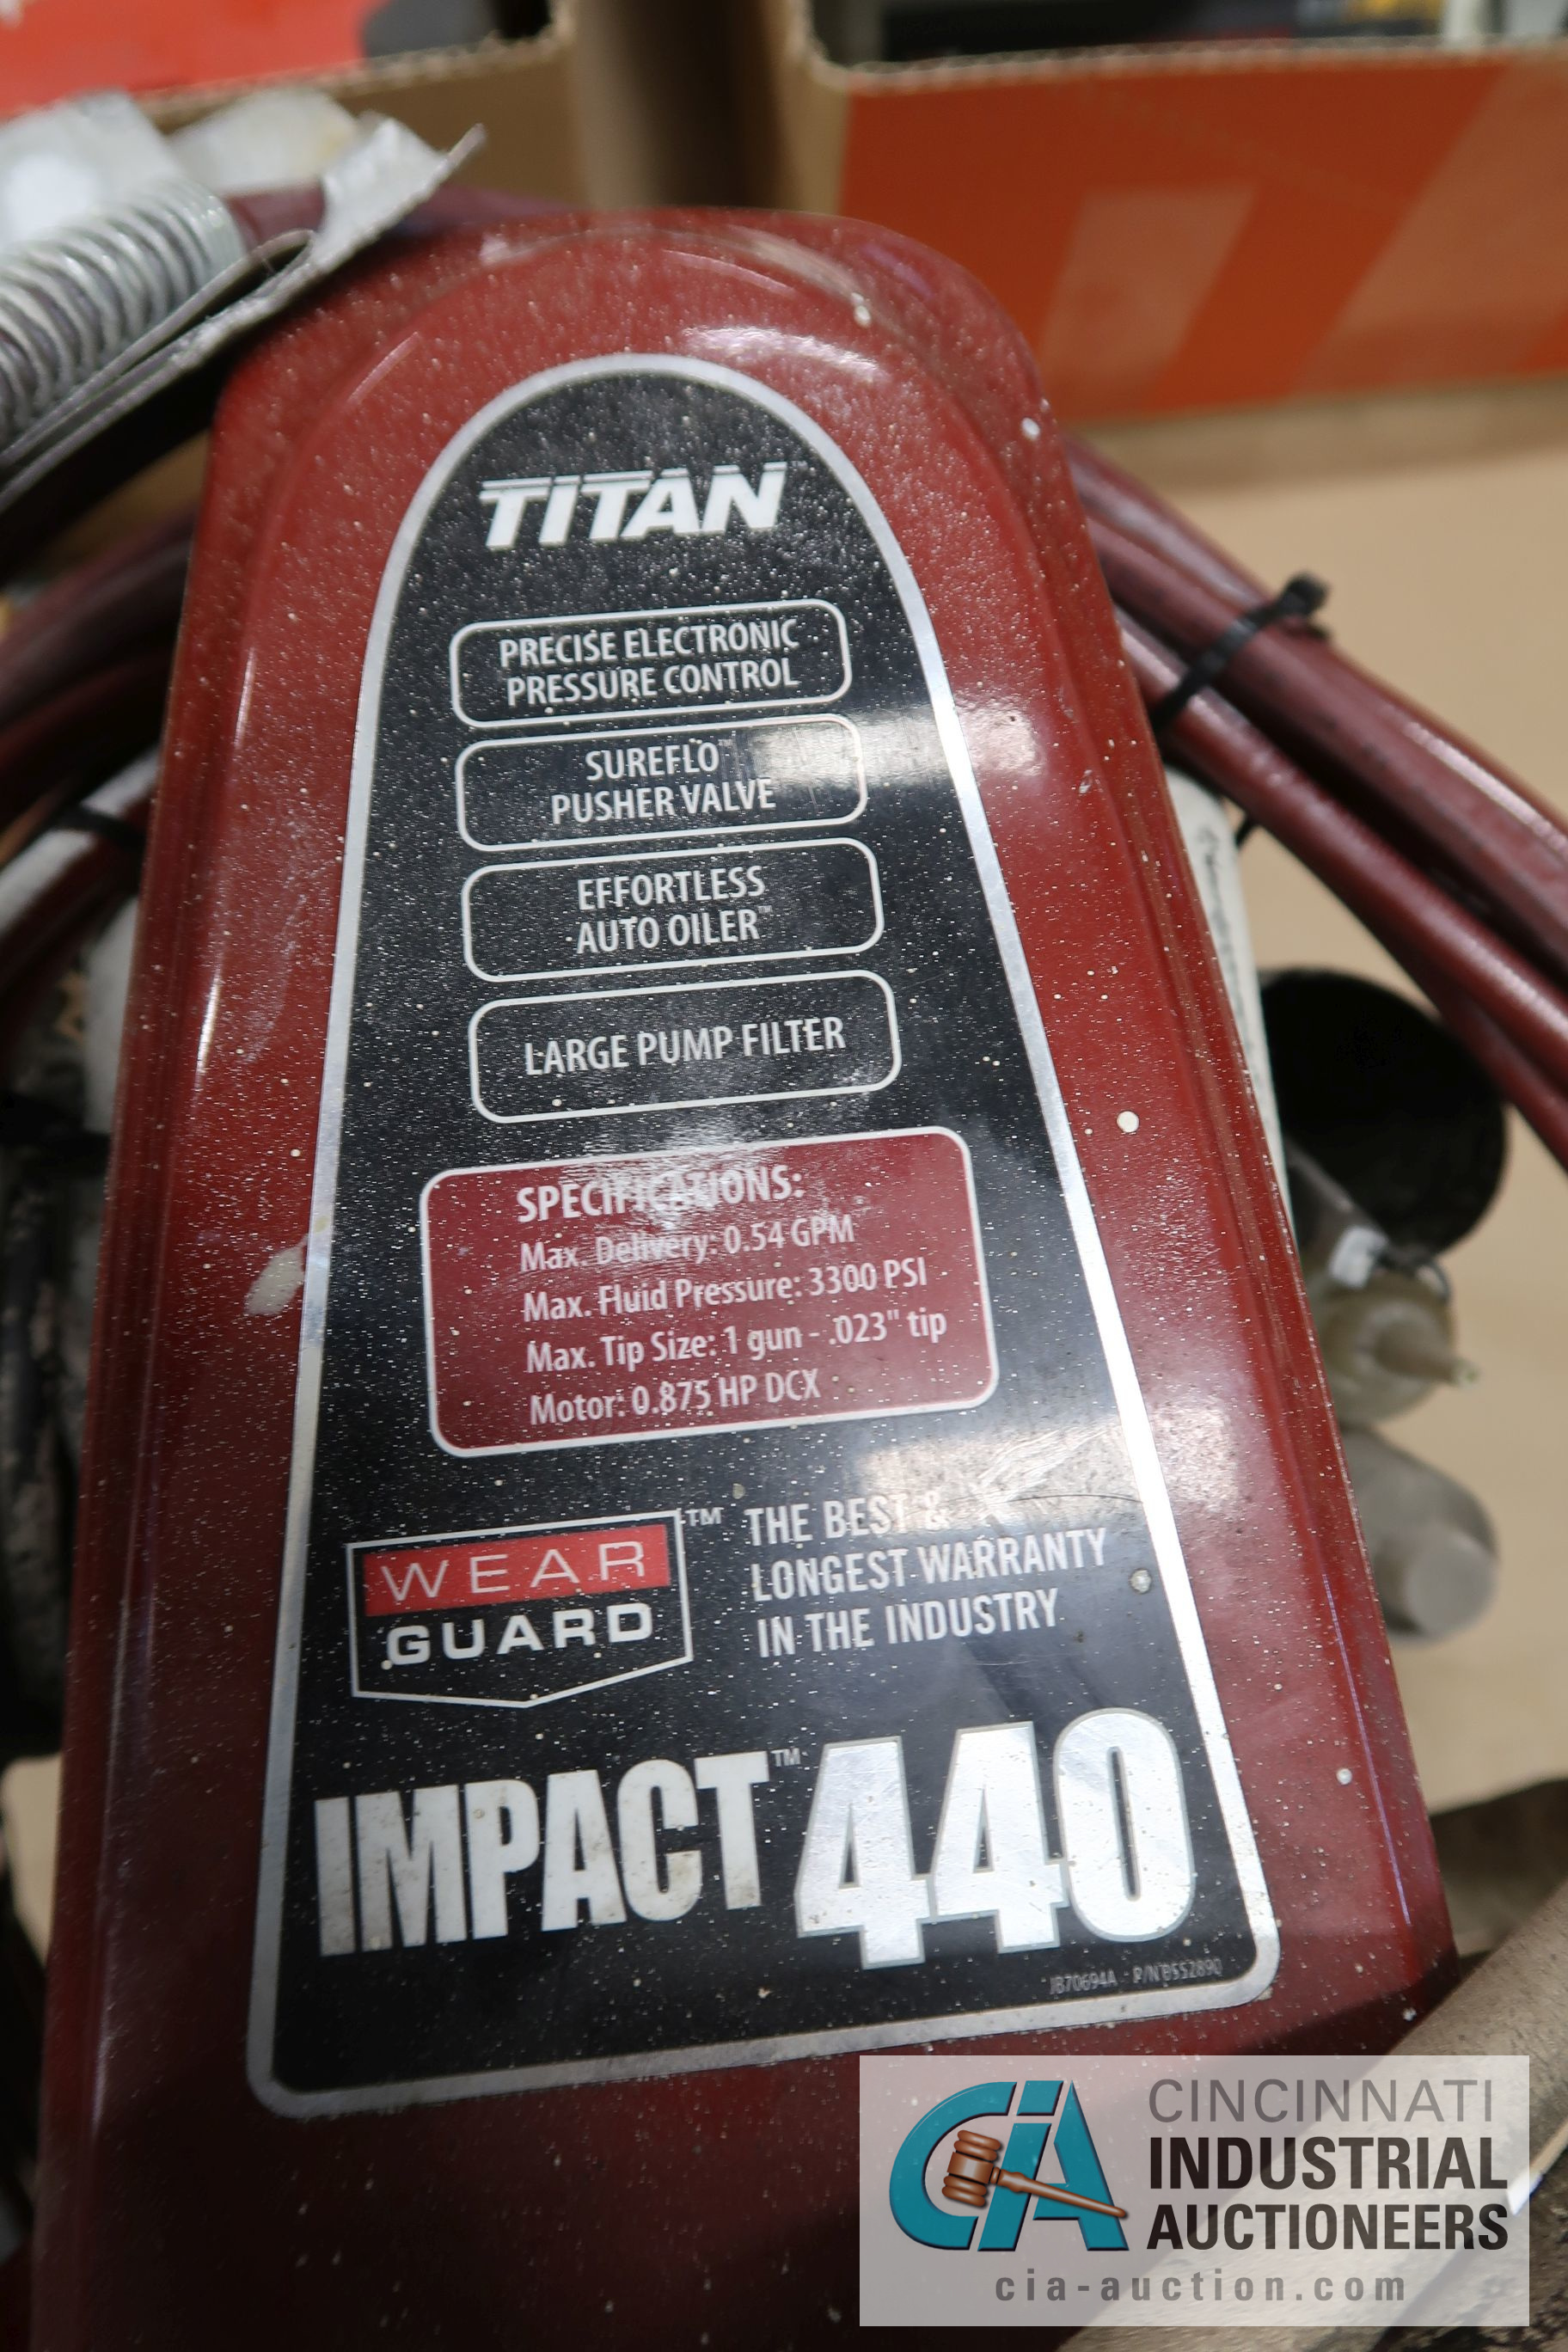 TITAN IMPACT 440 ELECTRIC AIRLESS PAINT POINT - Image 3 of 3